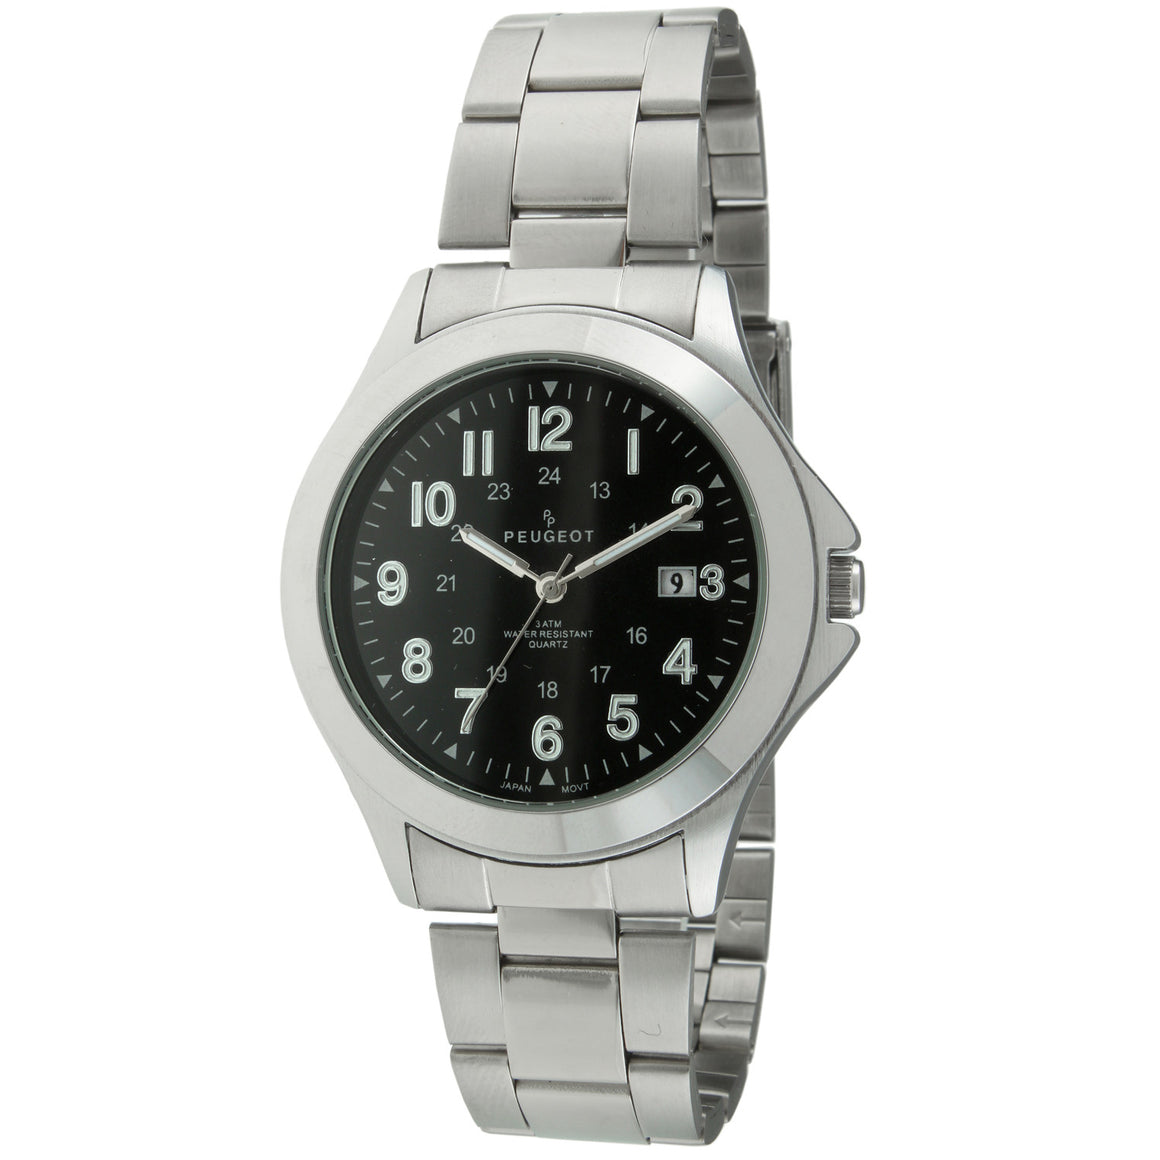 Silver Military Watch by Peugeot - Peugeot Watches